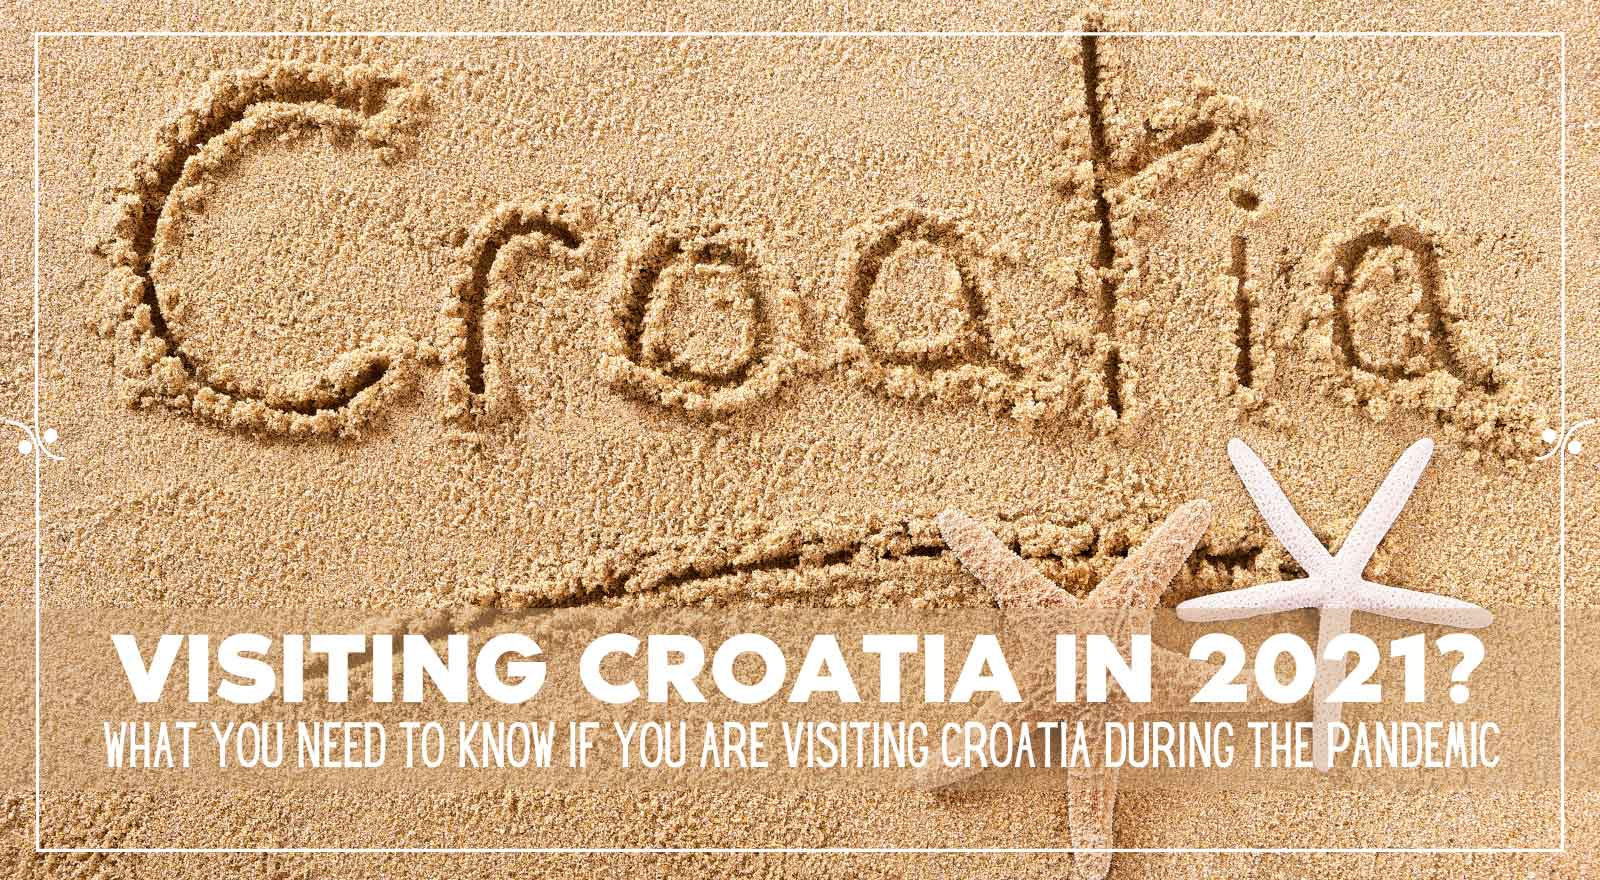 Visiting Croatia during Covid 19, info